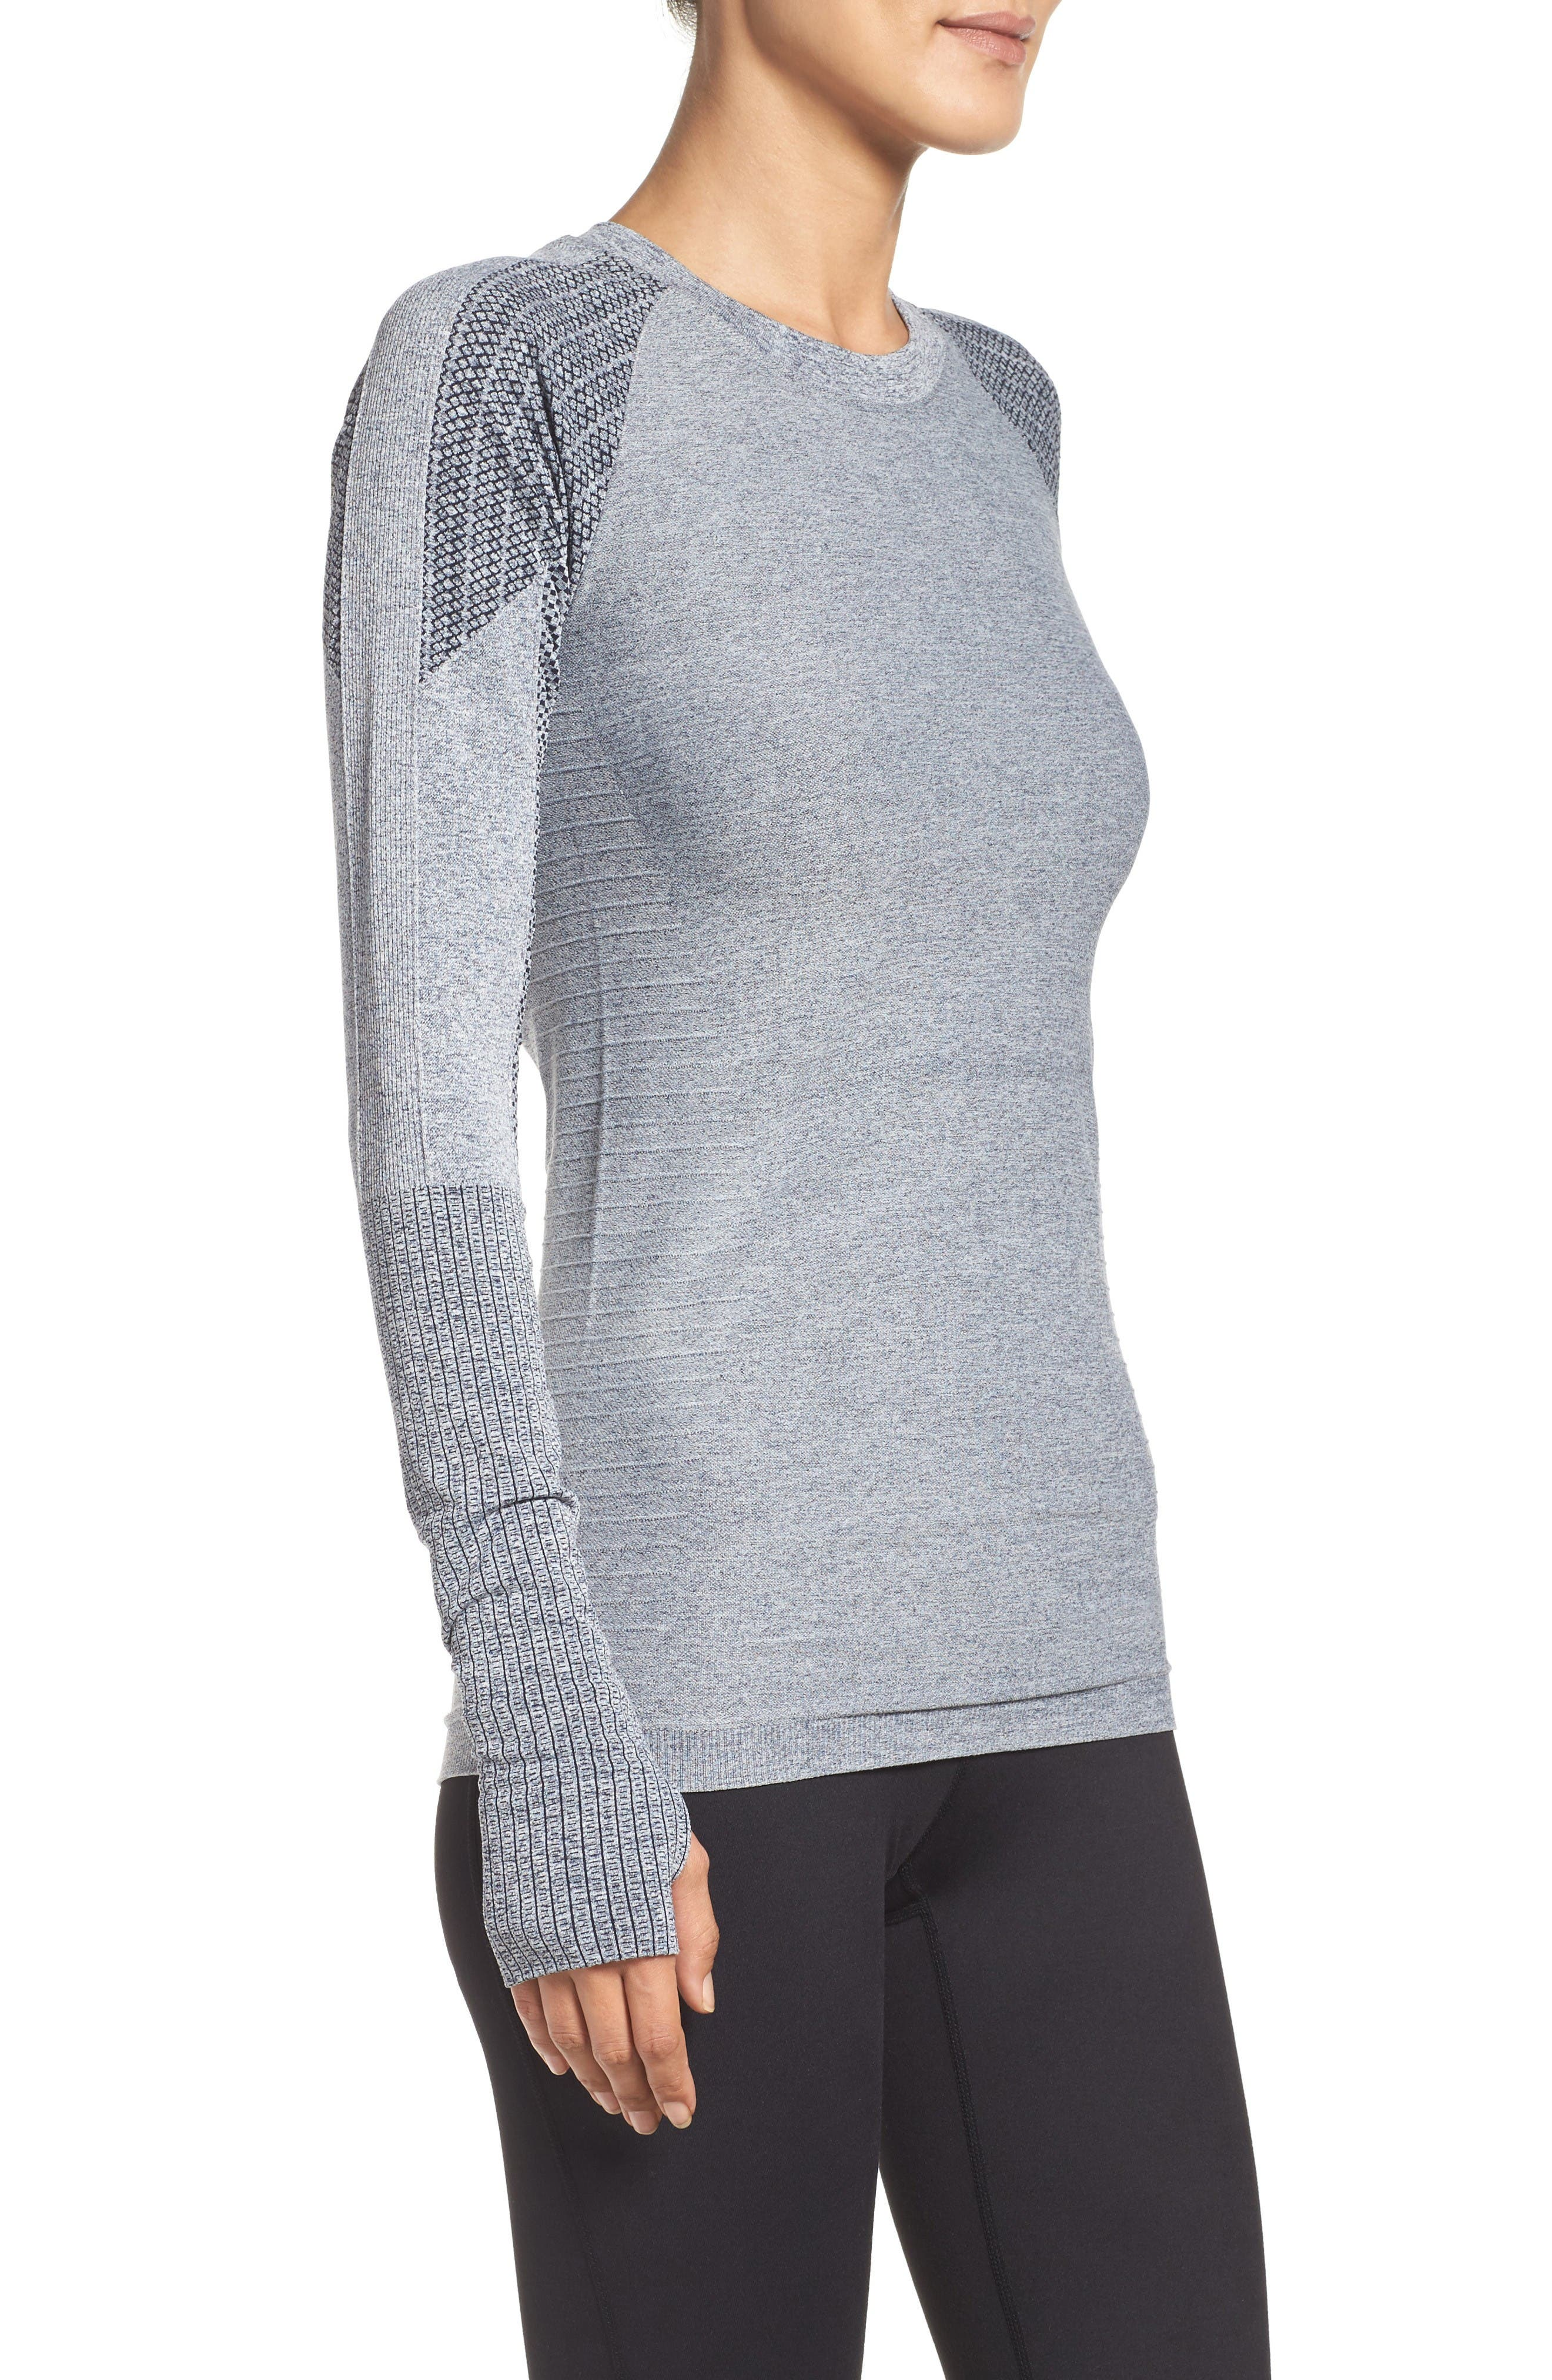 Dynamic Running Top,                             Alternate thumbnail 3, color,                             Grey/ White Melange